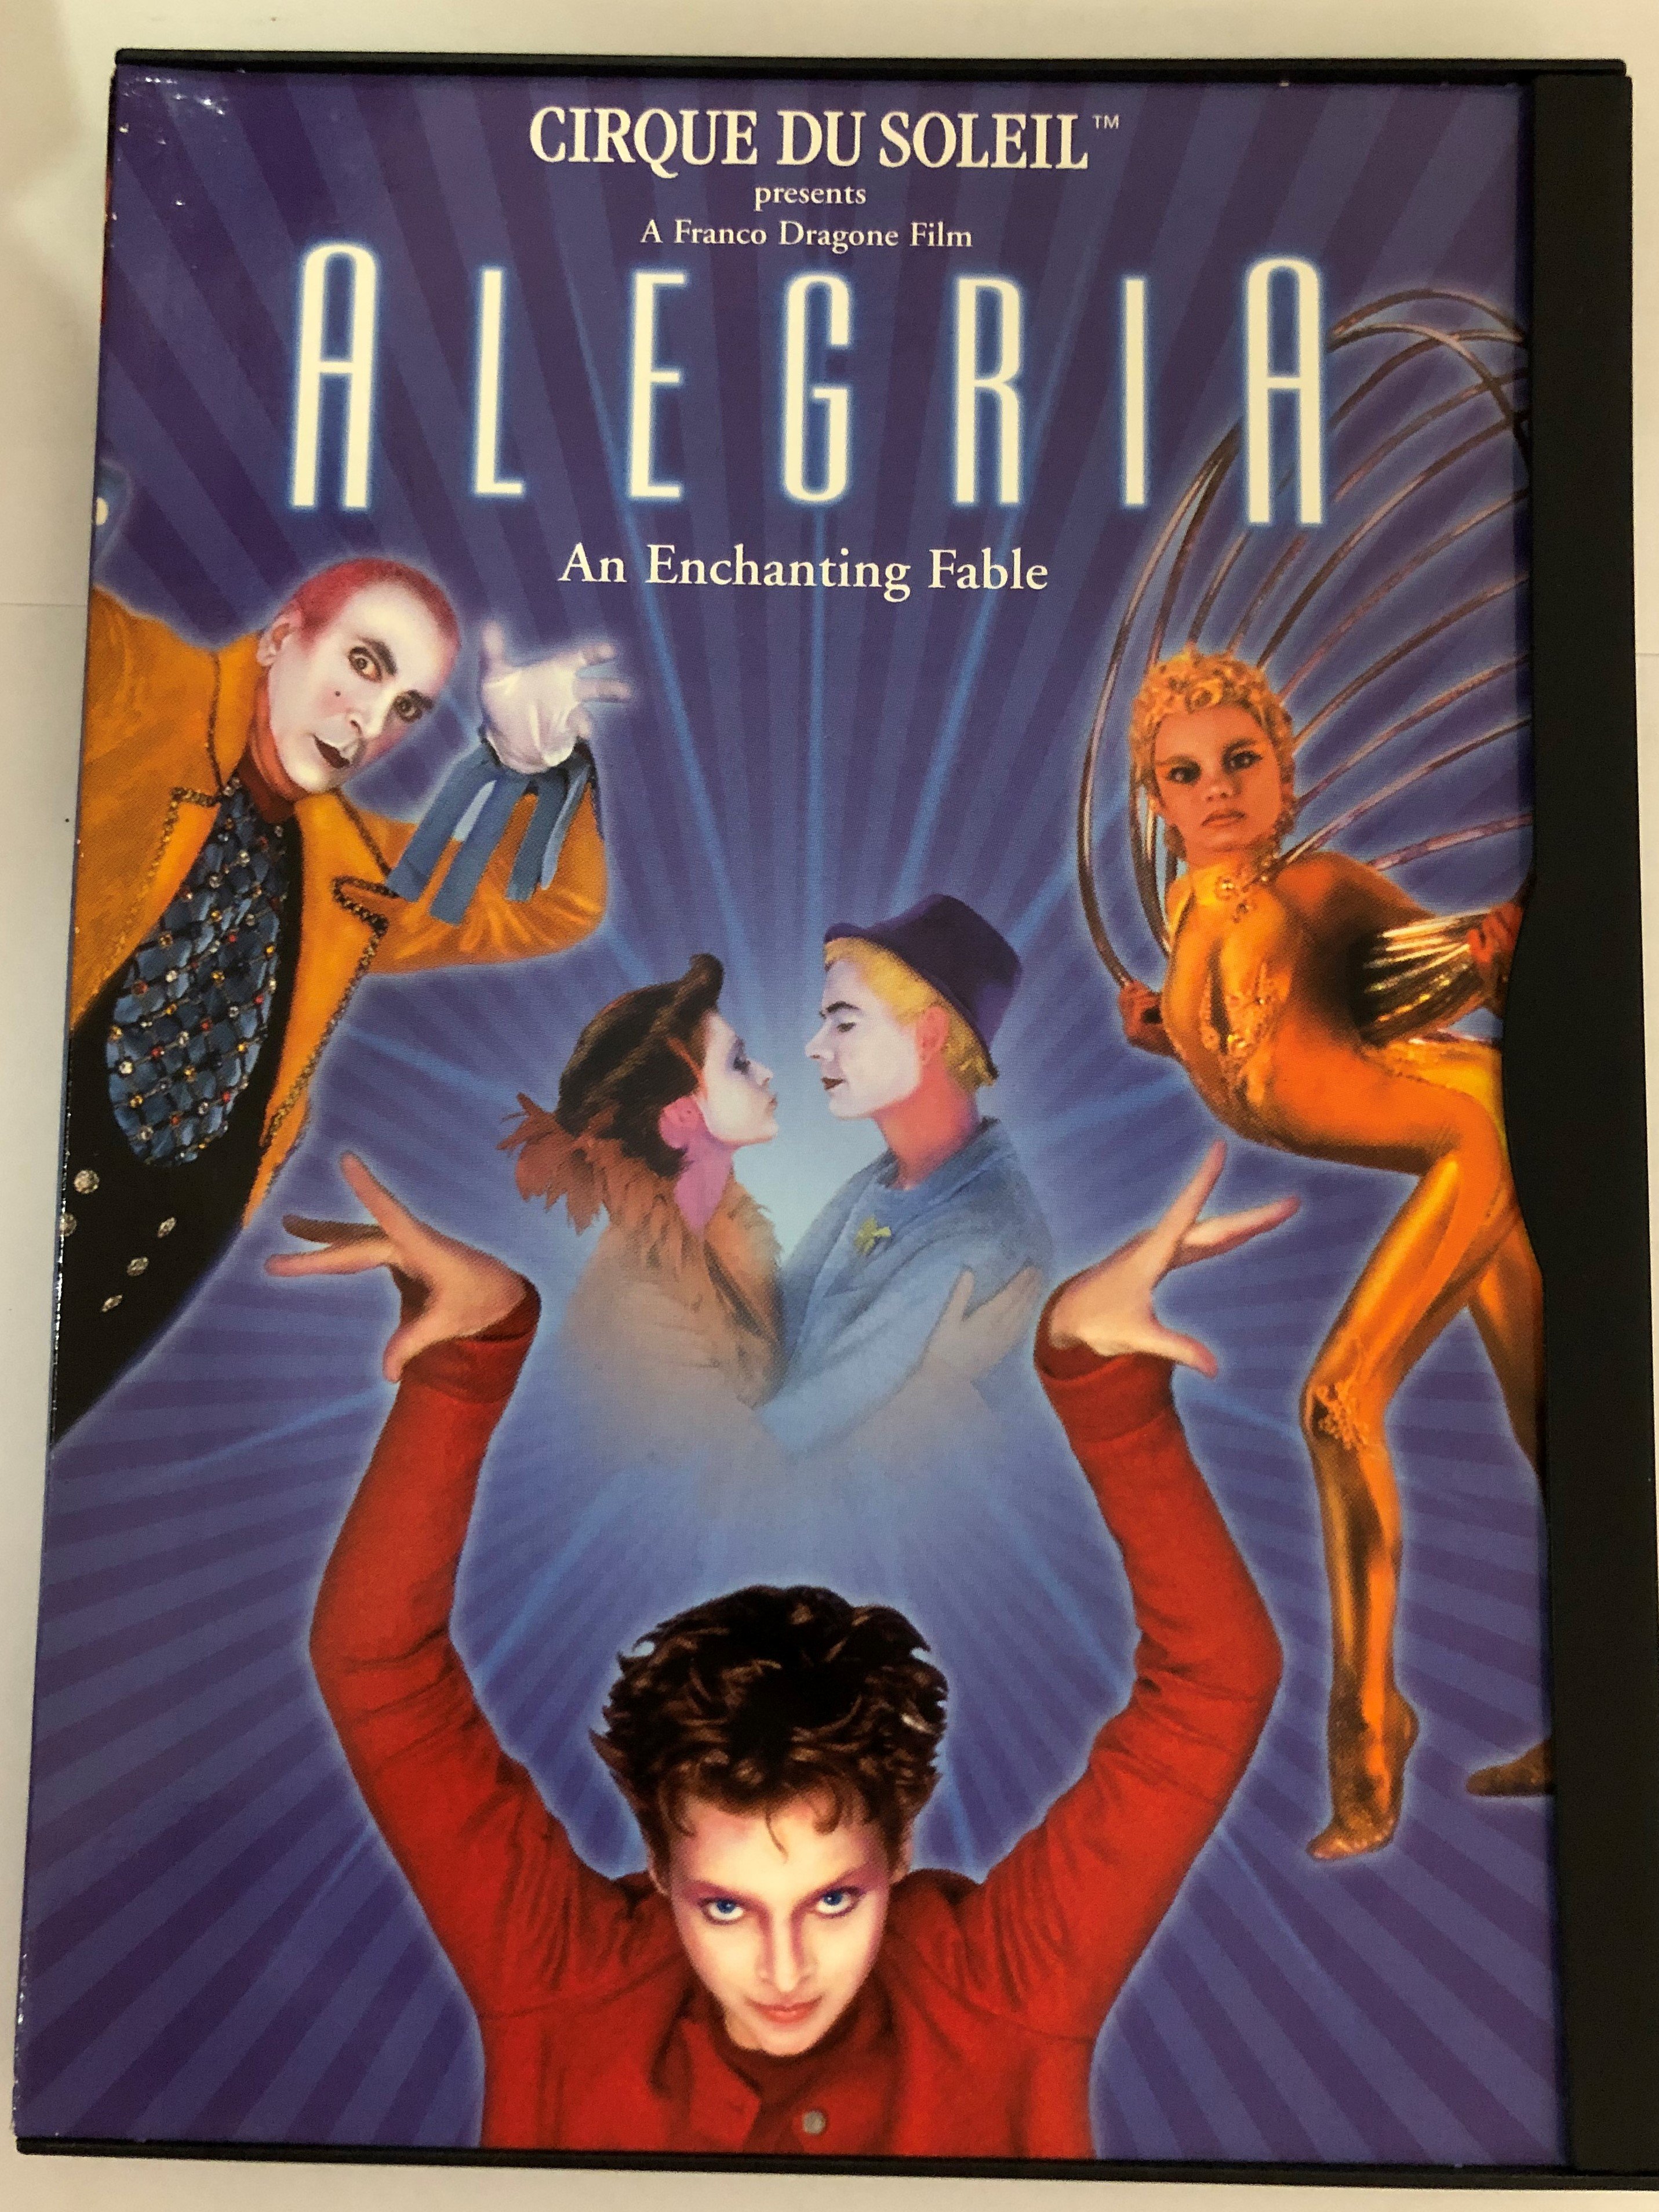 cirque-du-soleil-presents-alegria-an-enchanting-fable-dvd-1998-1.jpg